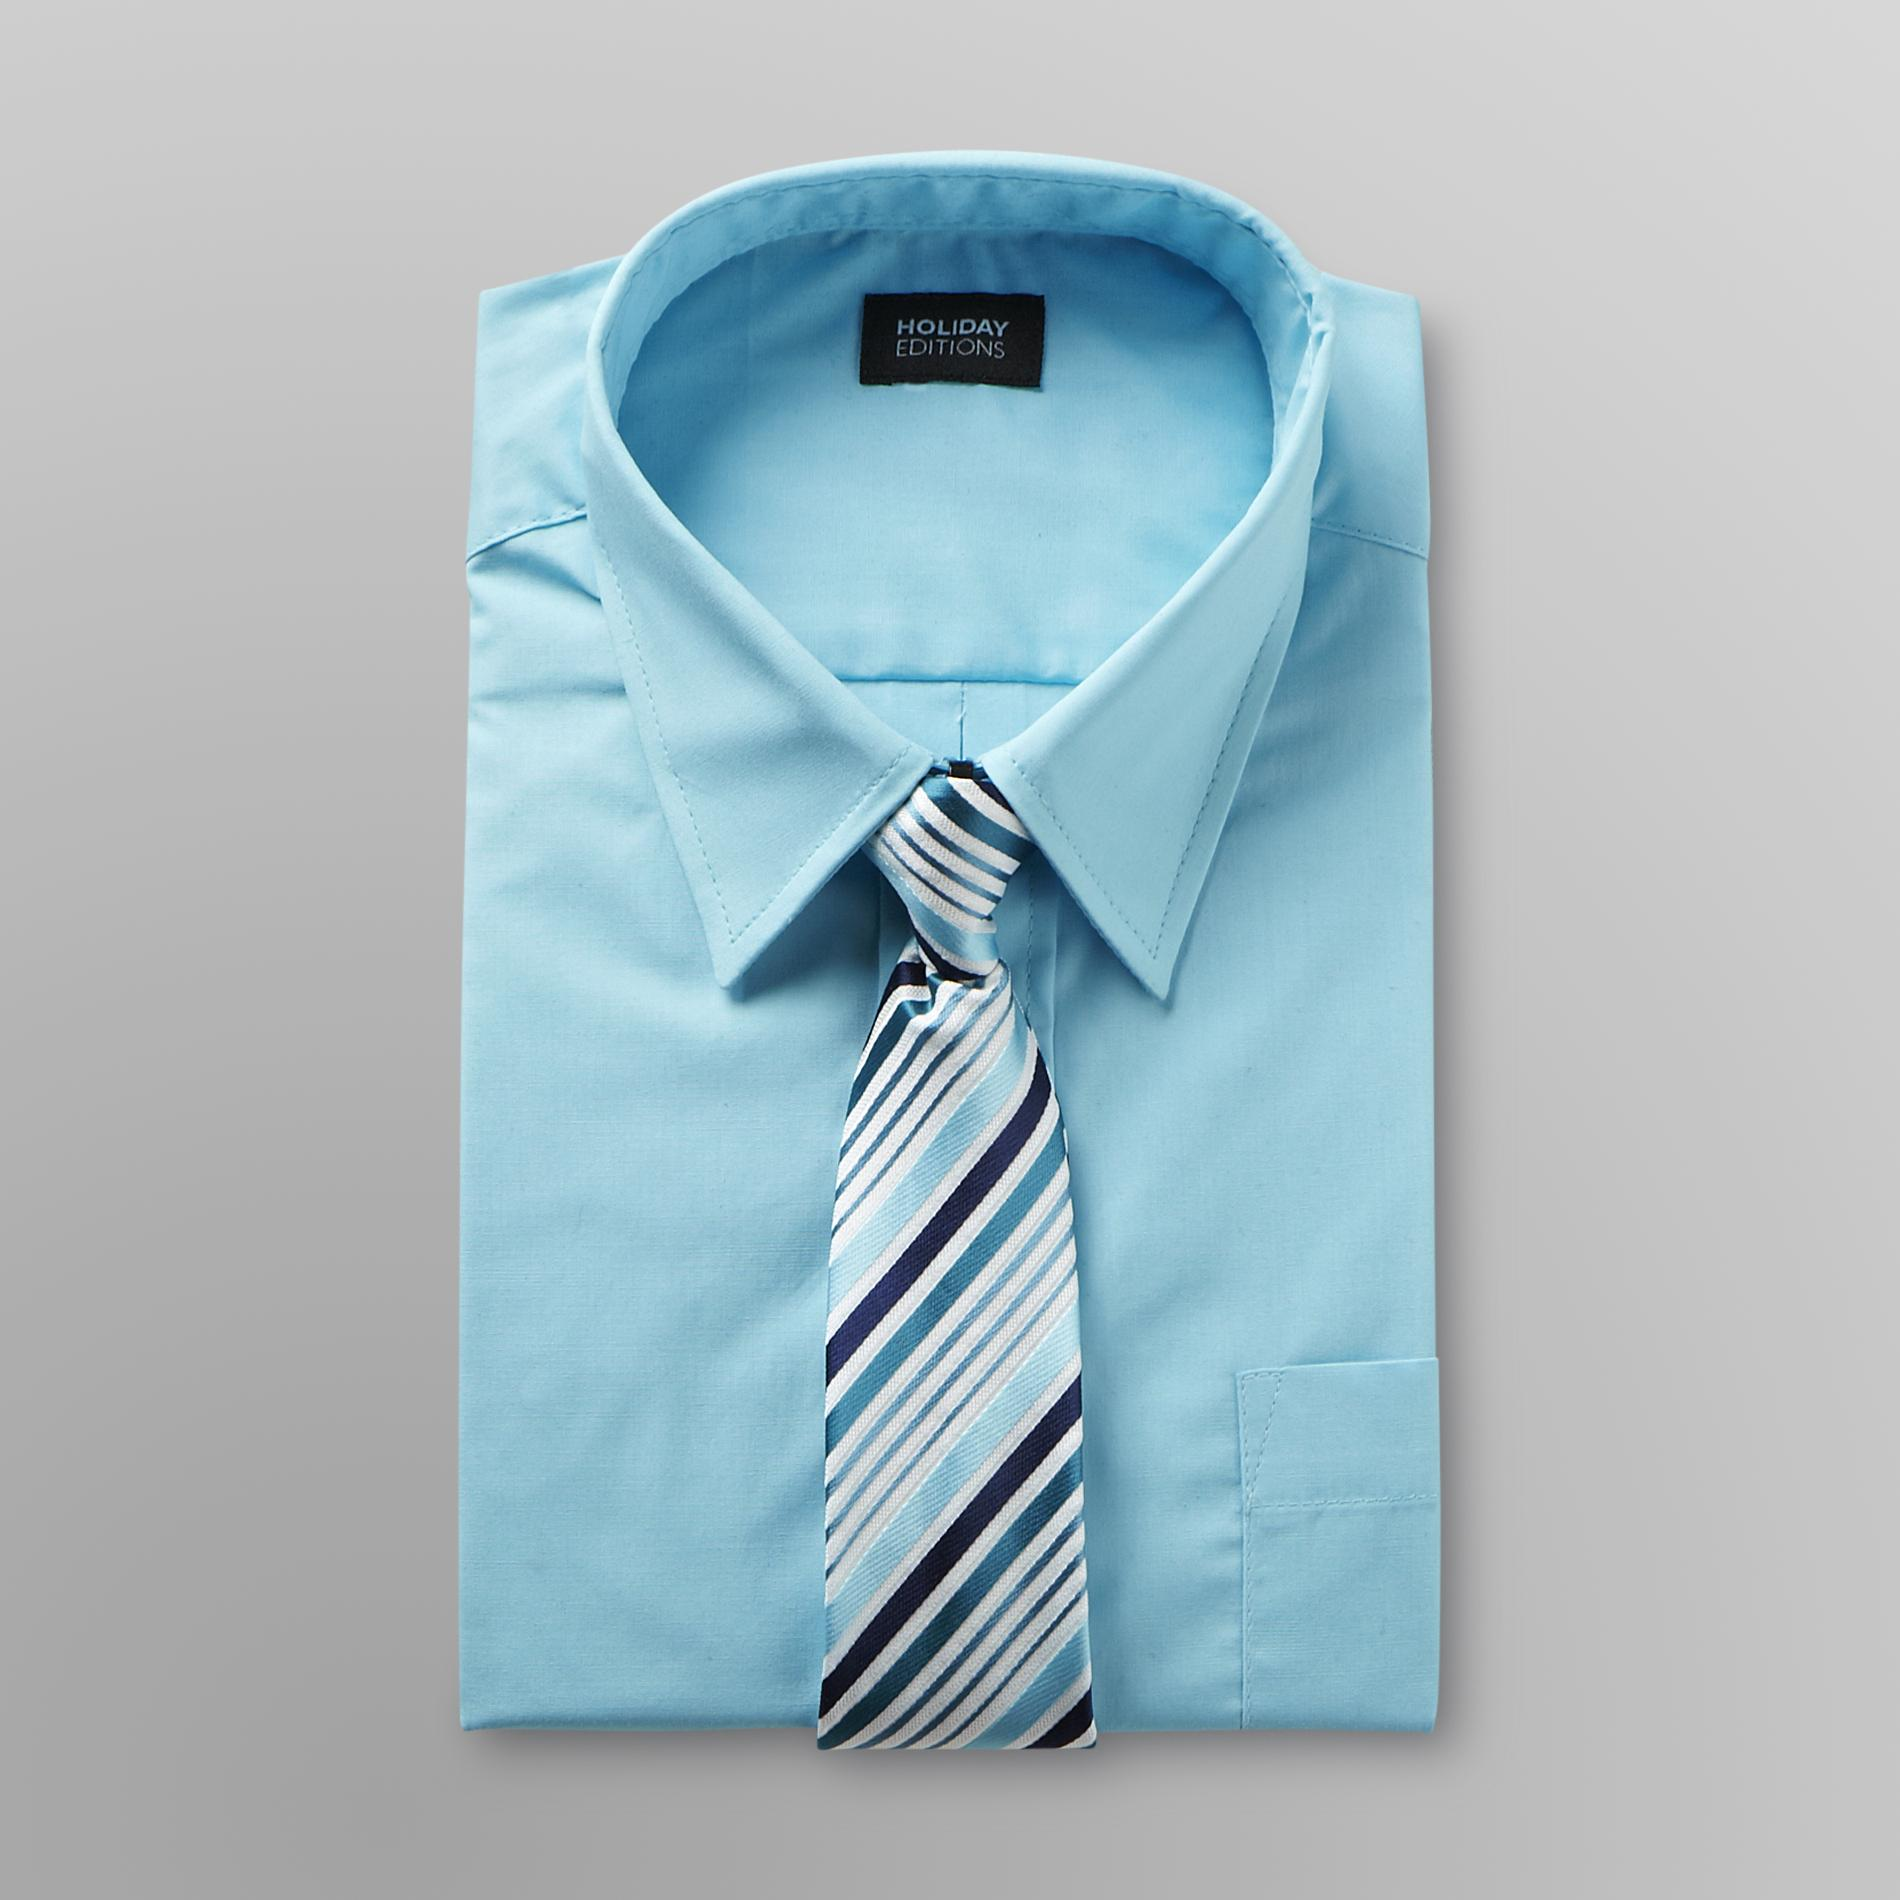 Holiday Editions  Boy's Dress Shirt &